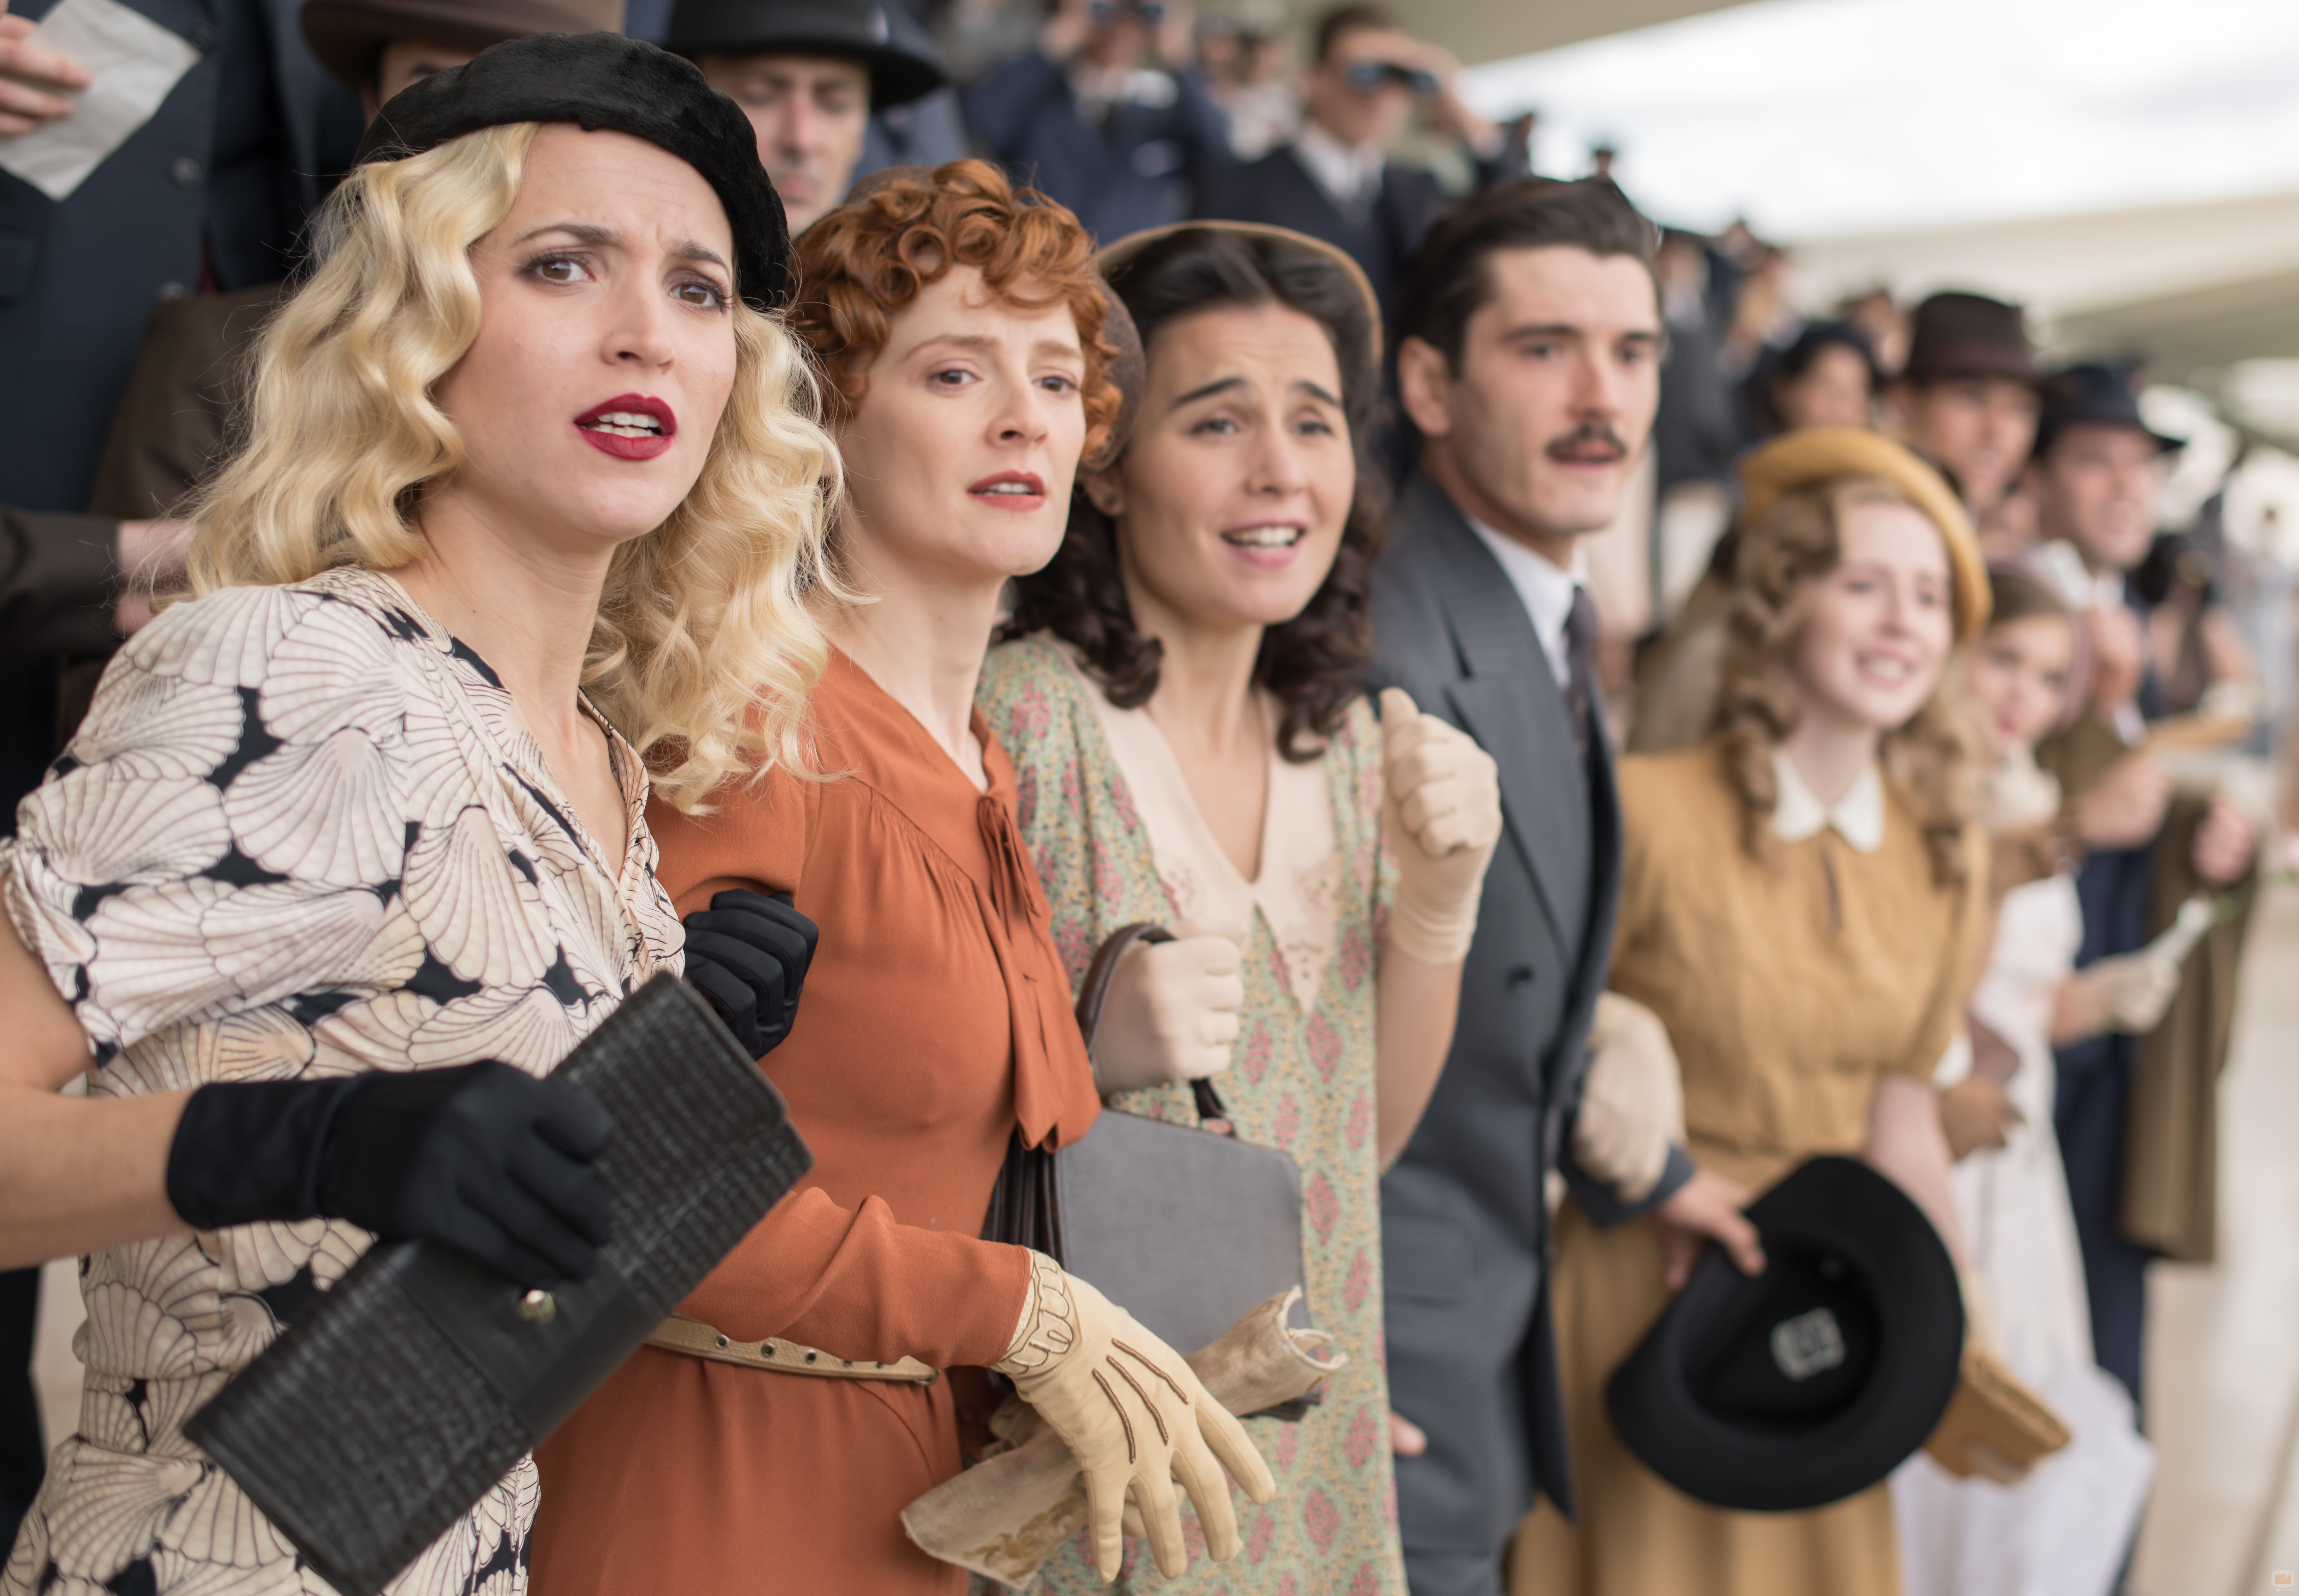 Carlota, Marga, Óscar, Francisco y Sofía en la temporada final de 'Las chicas del cable'